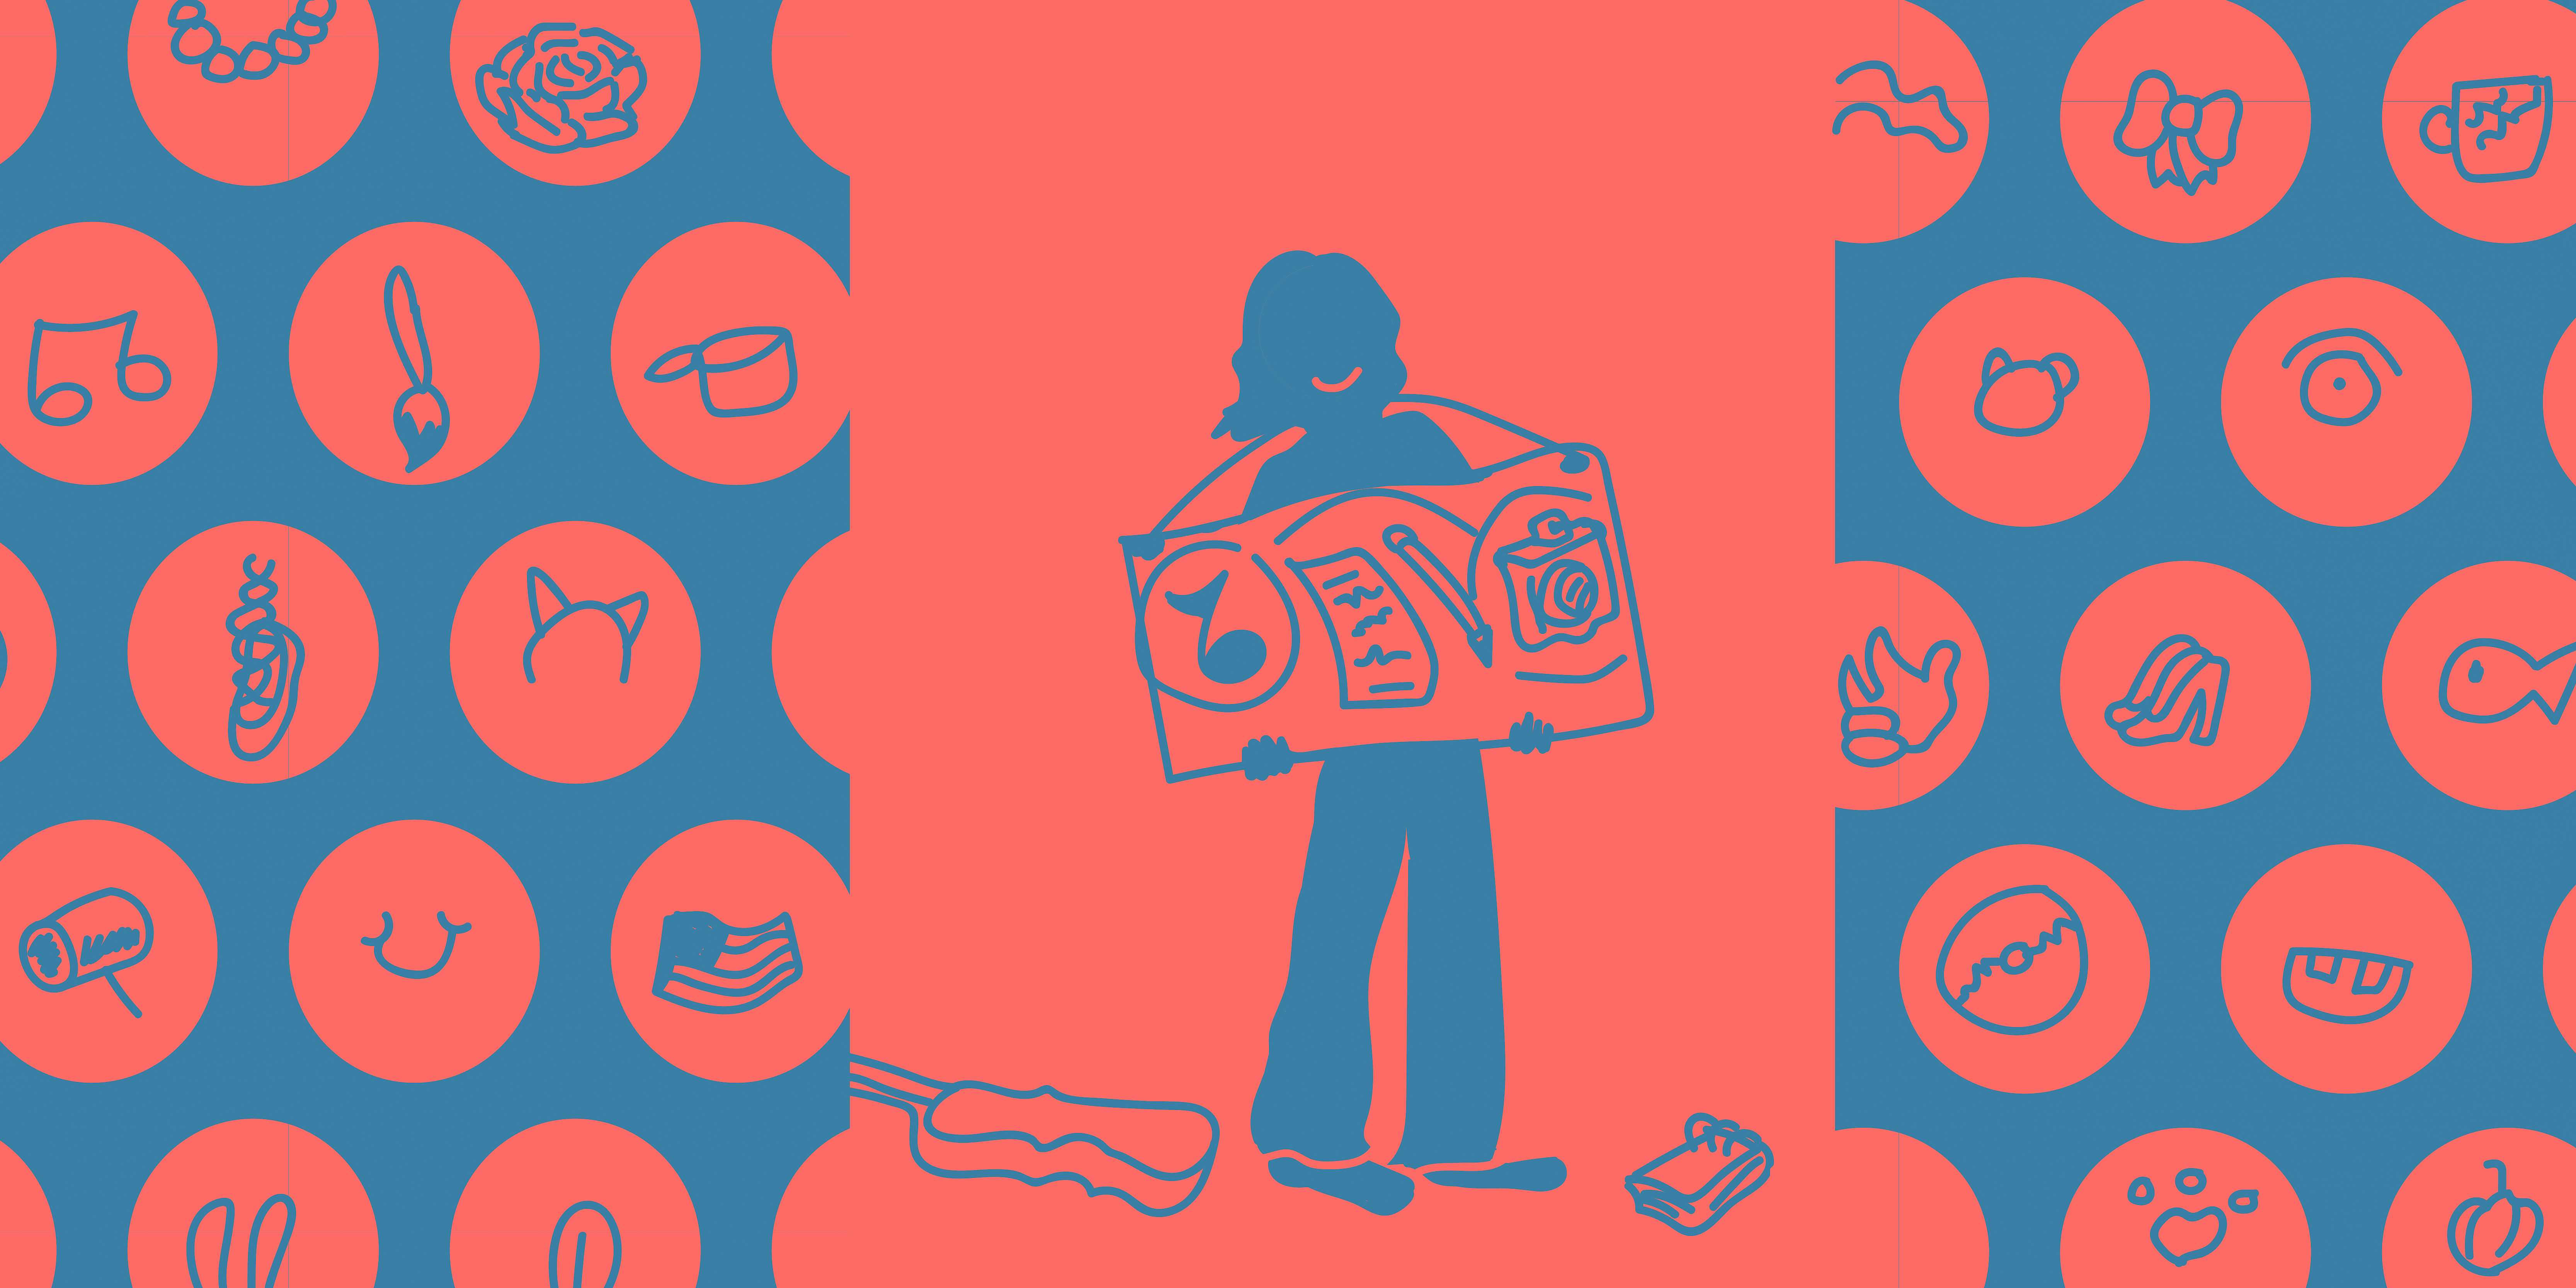 While developing a personal brand will not guarantee a job after graduation, it can certainly help with the search. / Illustration by Ally Rzesa